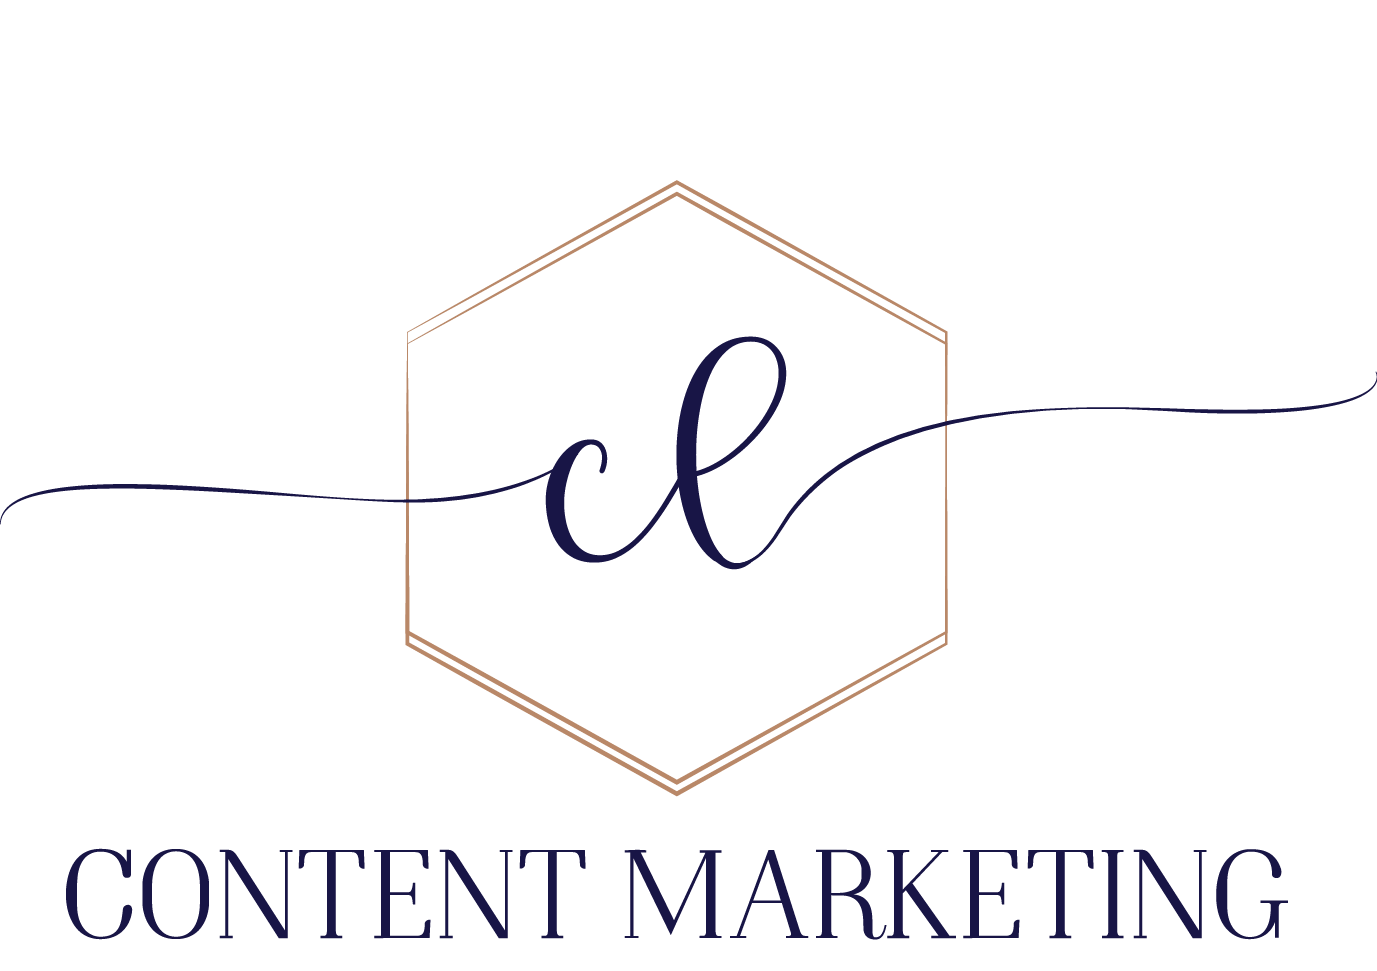 CL Content Marketing LLC